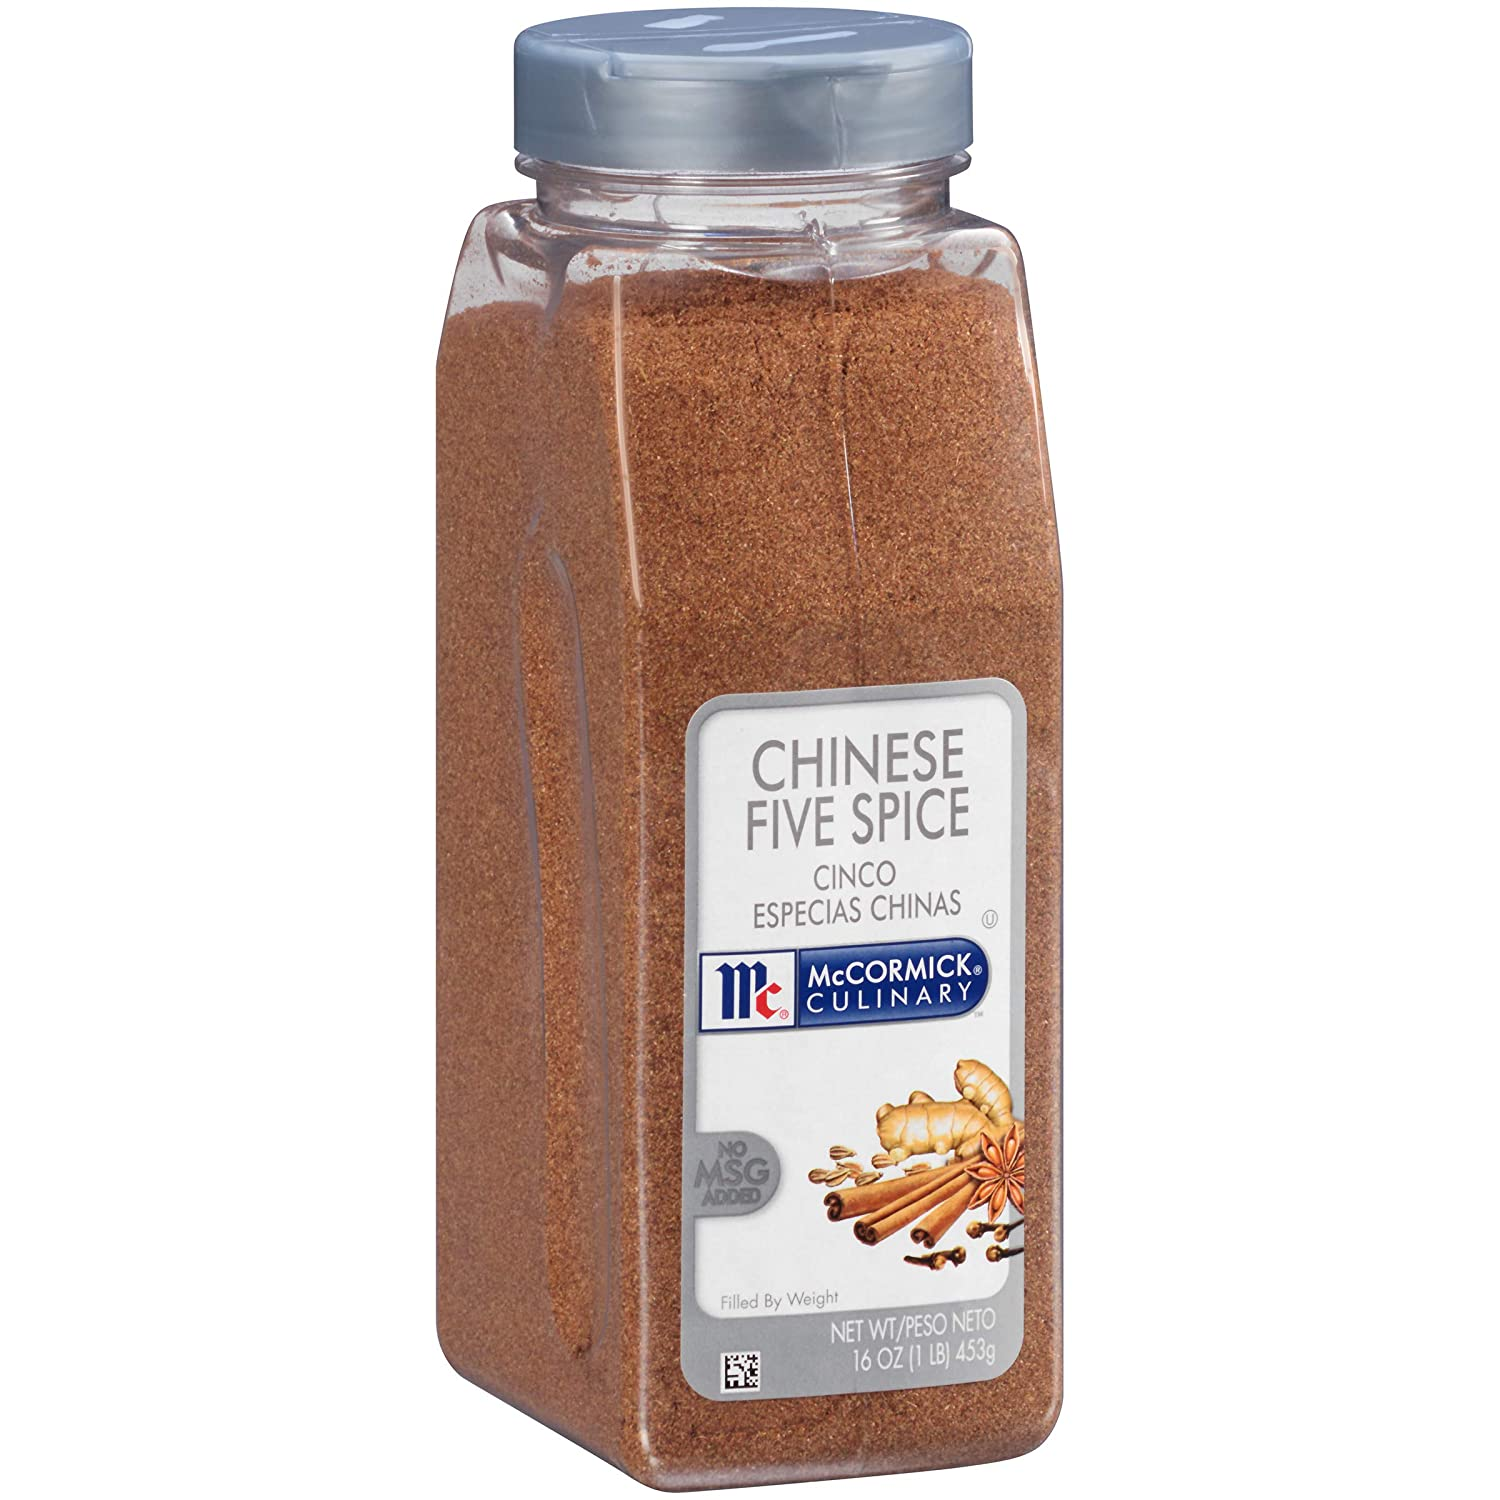 Over item handling ☆ McCormick Culinary Chinese Five Spice Max 53% OFF oz 16